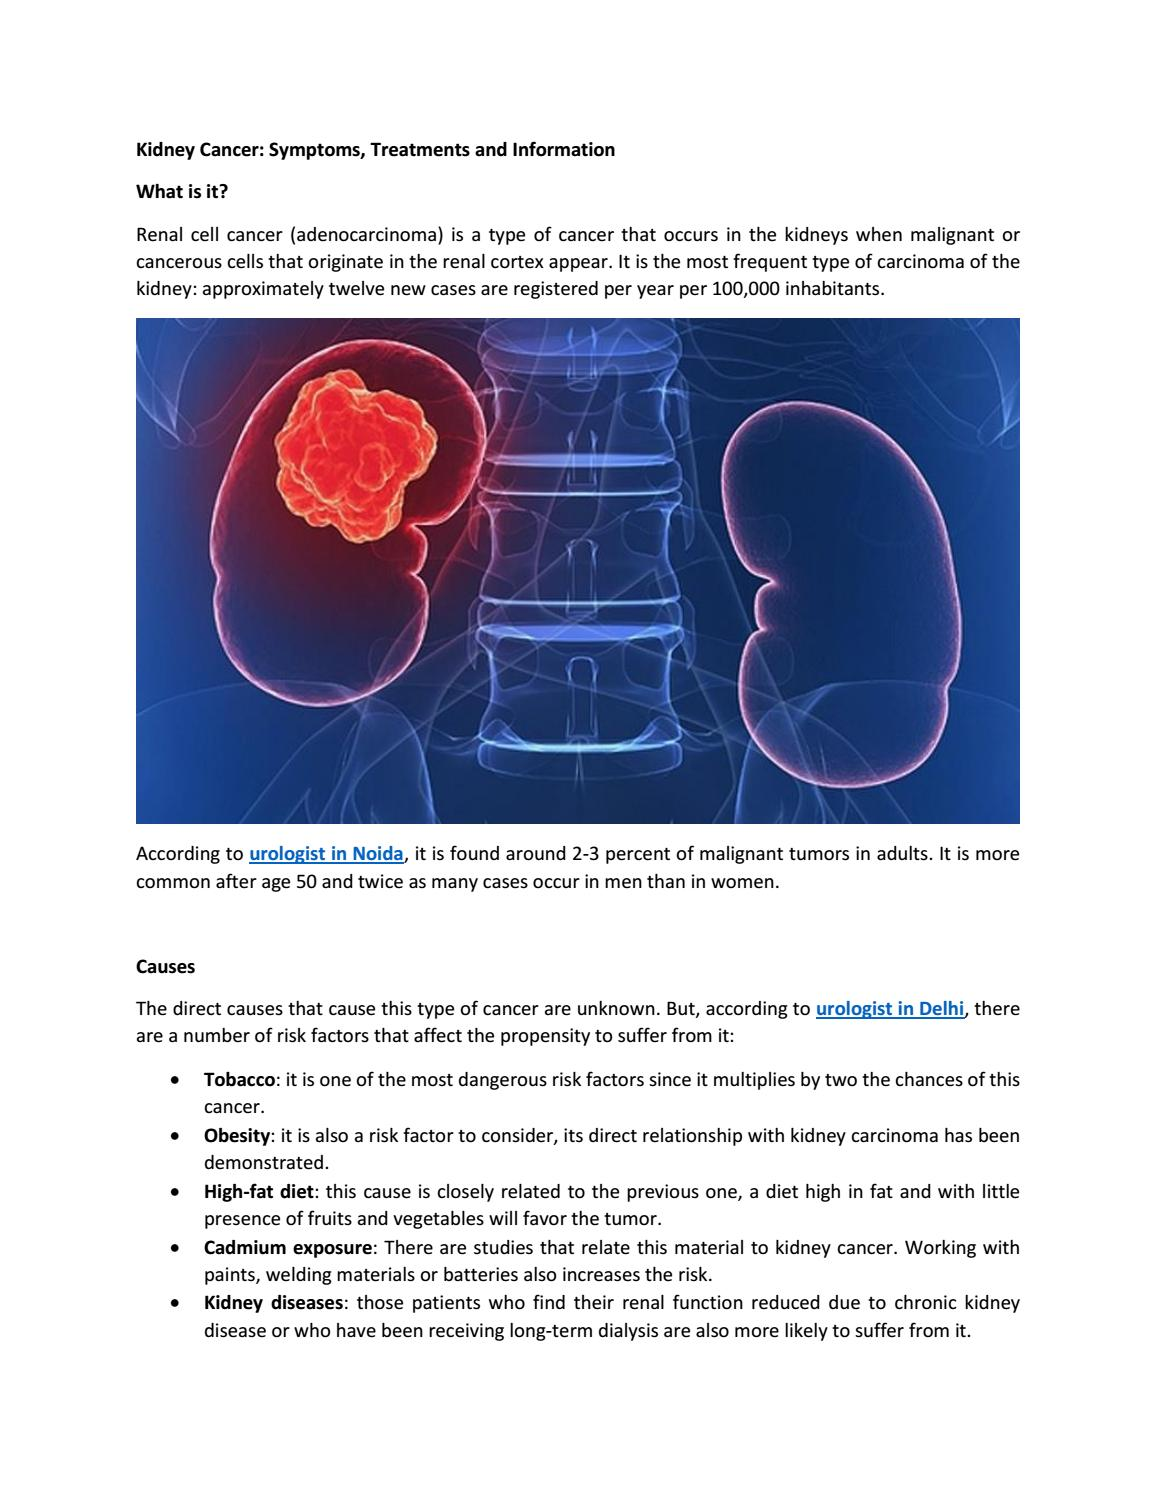 Kidney Cancer Symptoms Treatments And Information By Dr Shailendra Goel Issuu